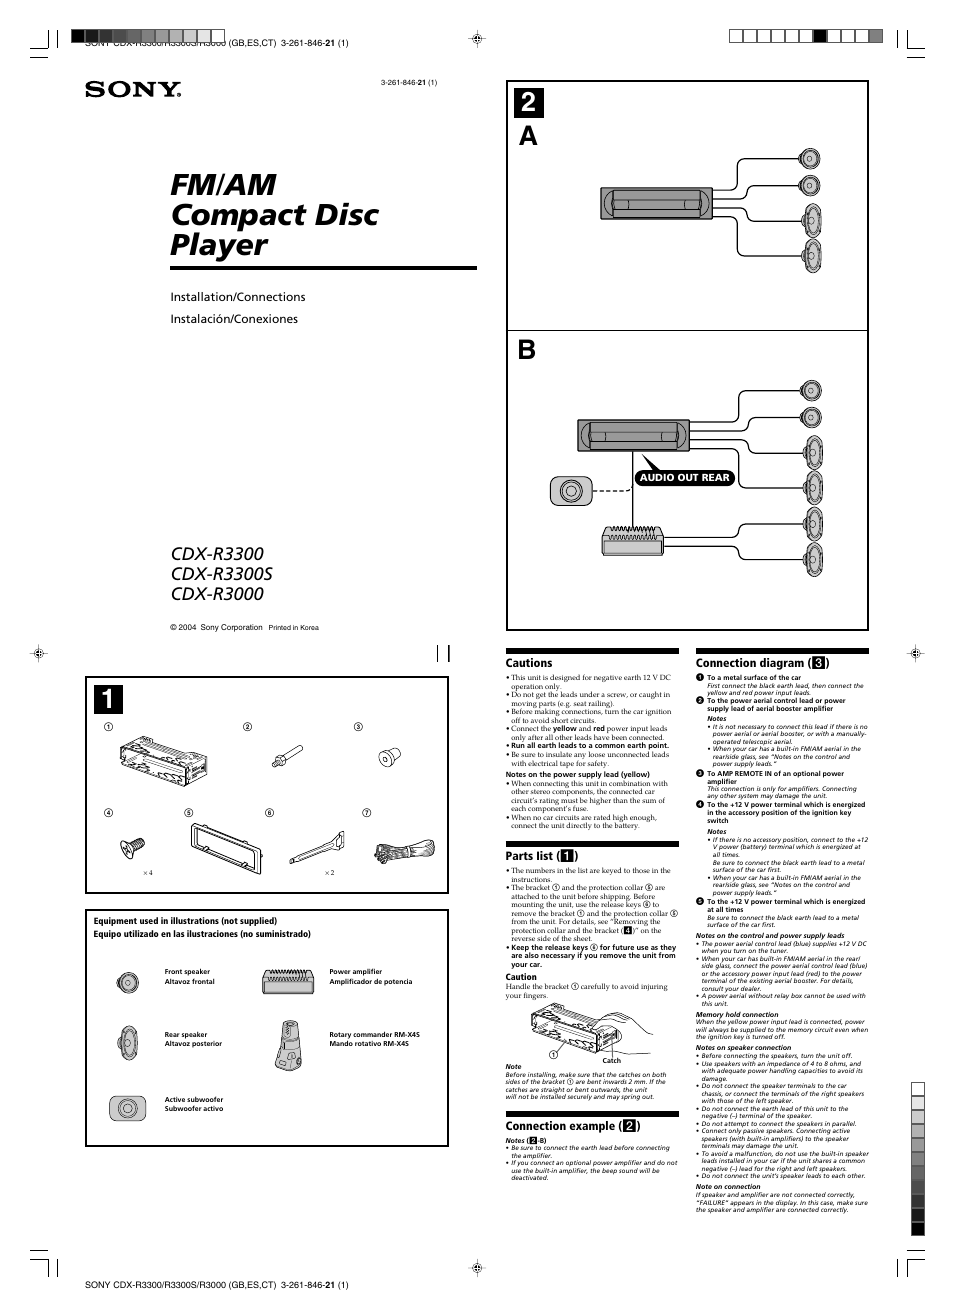 cdx fw700 wiring diagram sony cdx-r3000 user manual | 4 pages